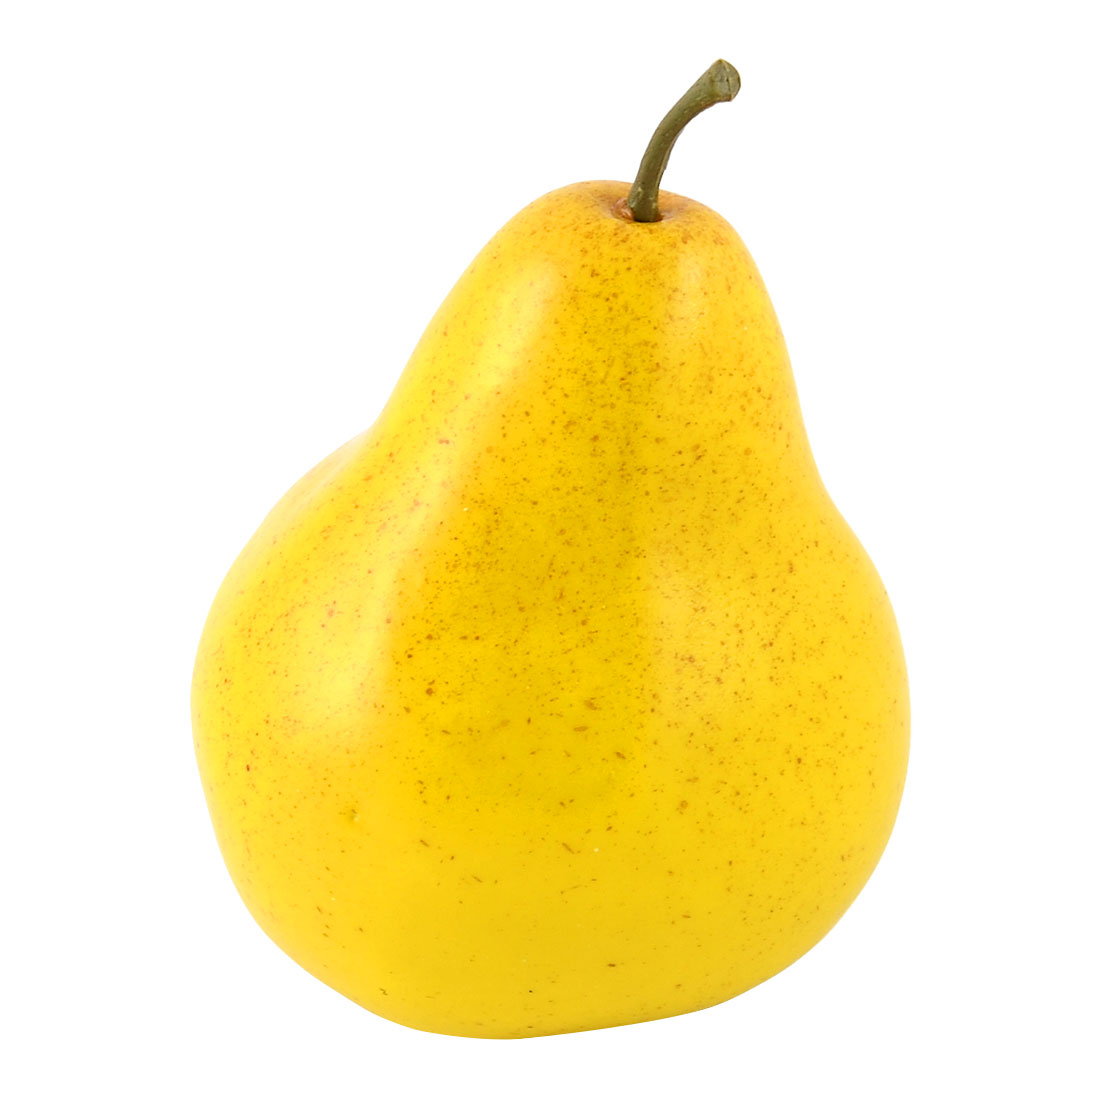 Artificial Fruit Foam Lifelike Decoration Handmade Simulation Pear Yellow